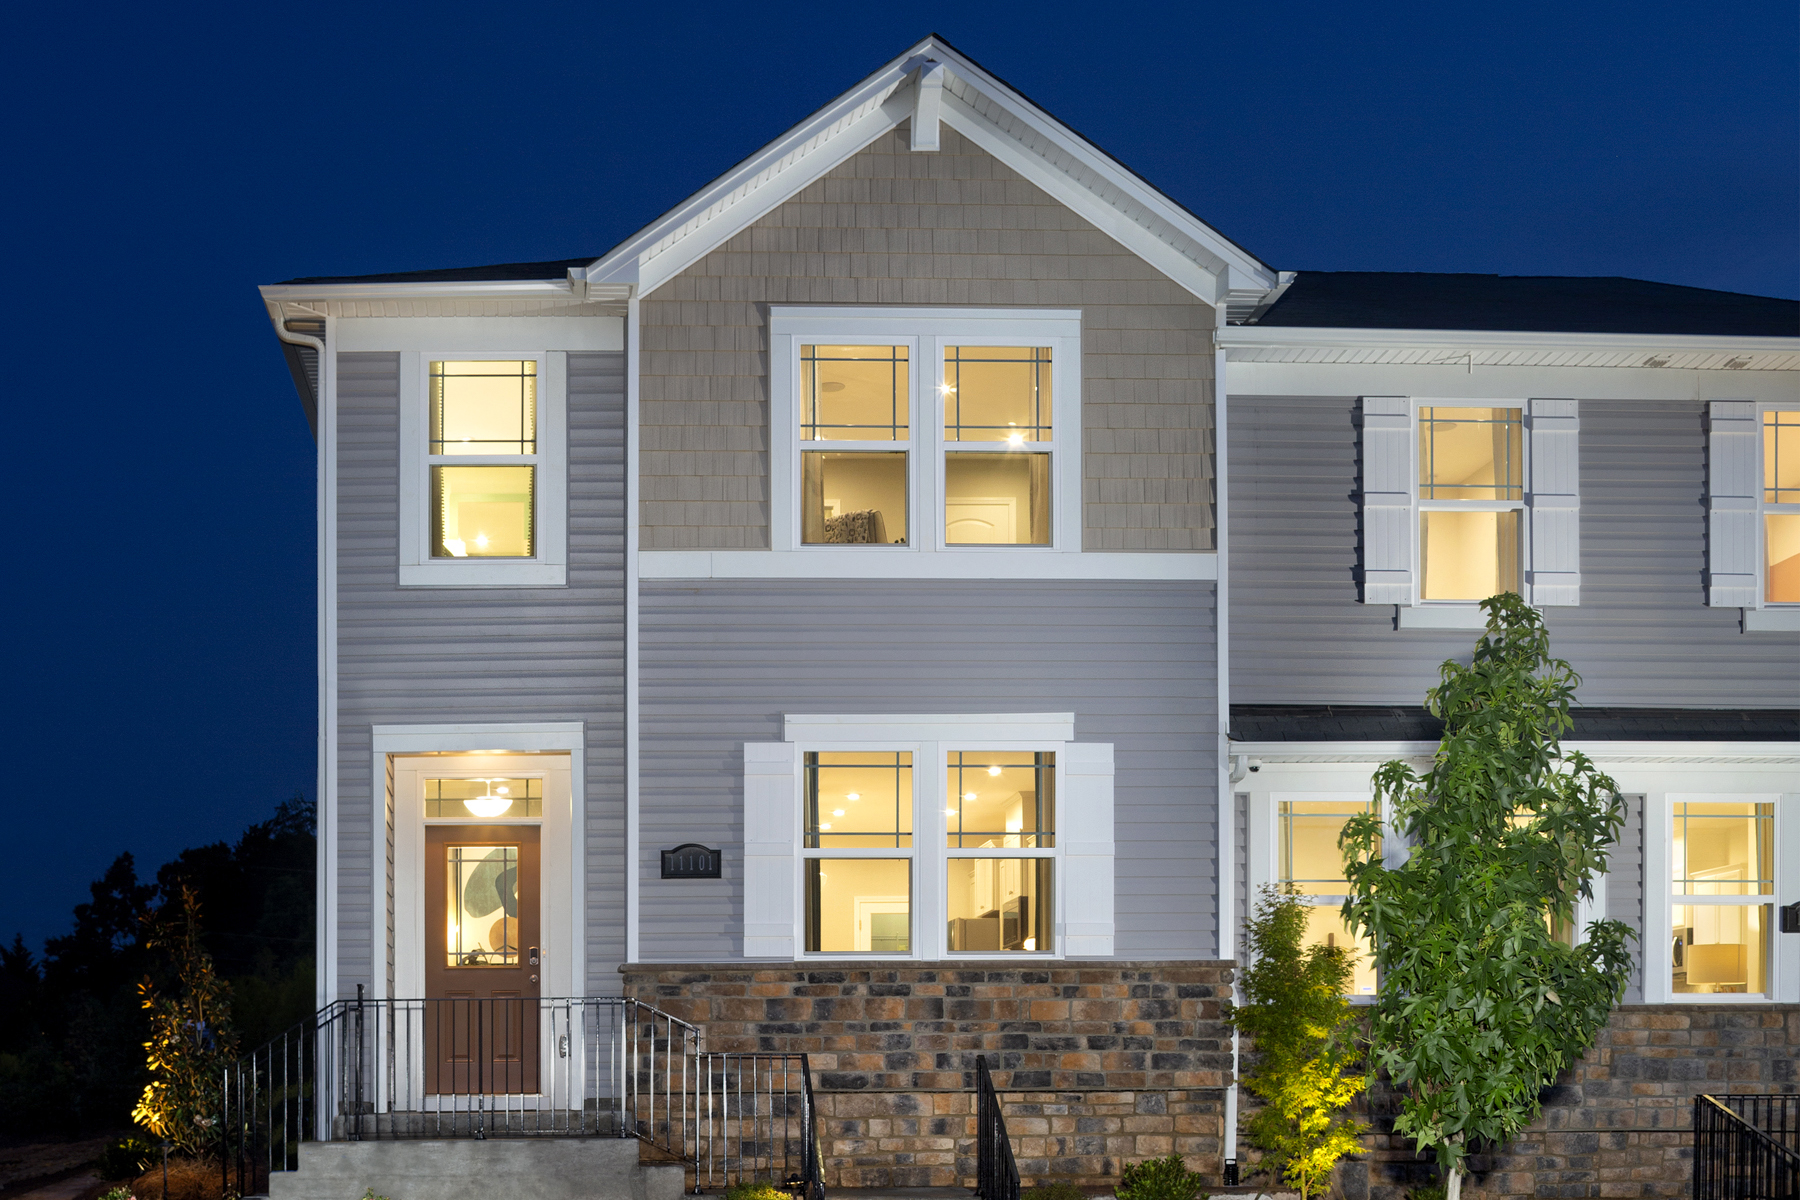 Rodric Plan CLT_GAL_Rodric_Model_Exterior_Twilight_1800x1200 at Galloway Park in Charlotte North Carolina by Mattamy Homes